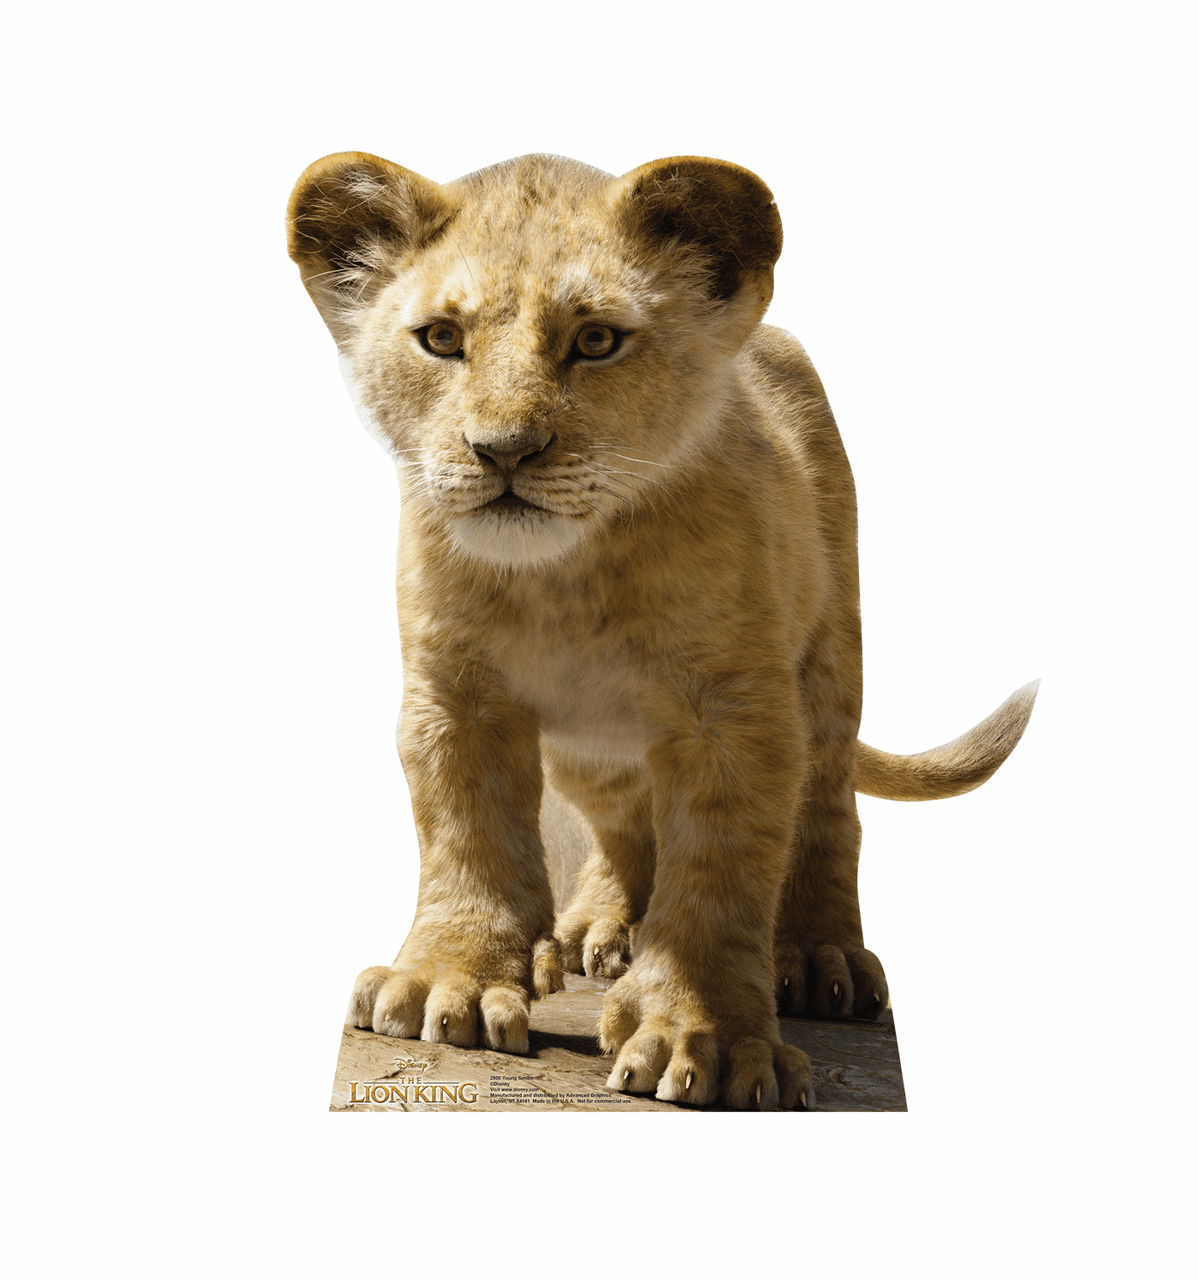 Live Action Lion King Young Simba Standee